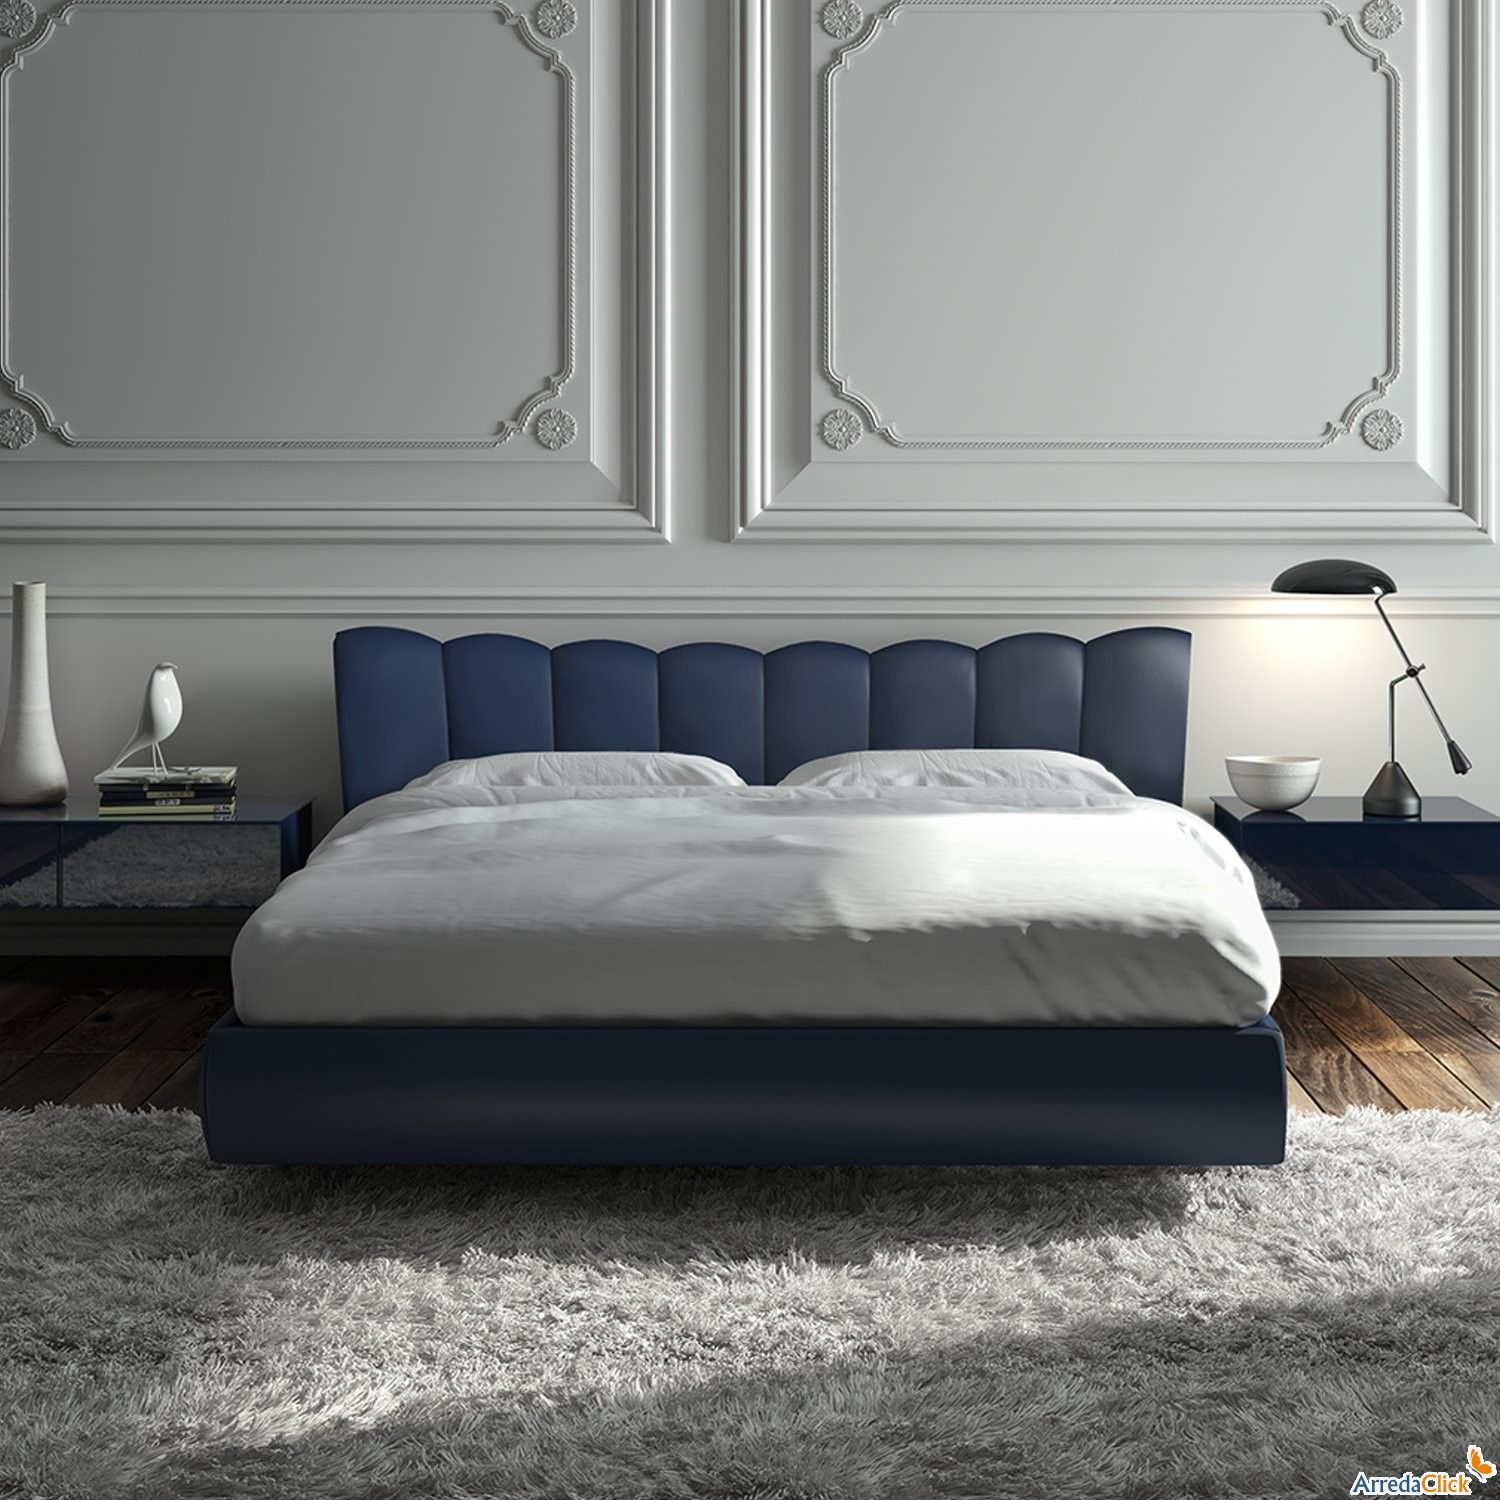 Blue  white  black   classy bedroom What an amazing wall   J Reid     Blue  white  black   classy bedroom What an amazing wall   J Reid English